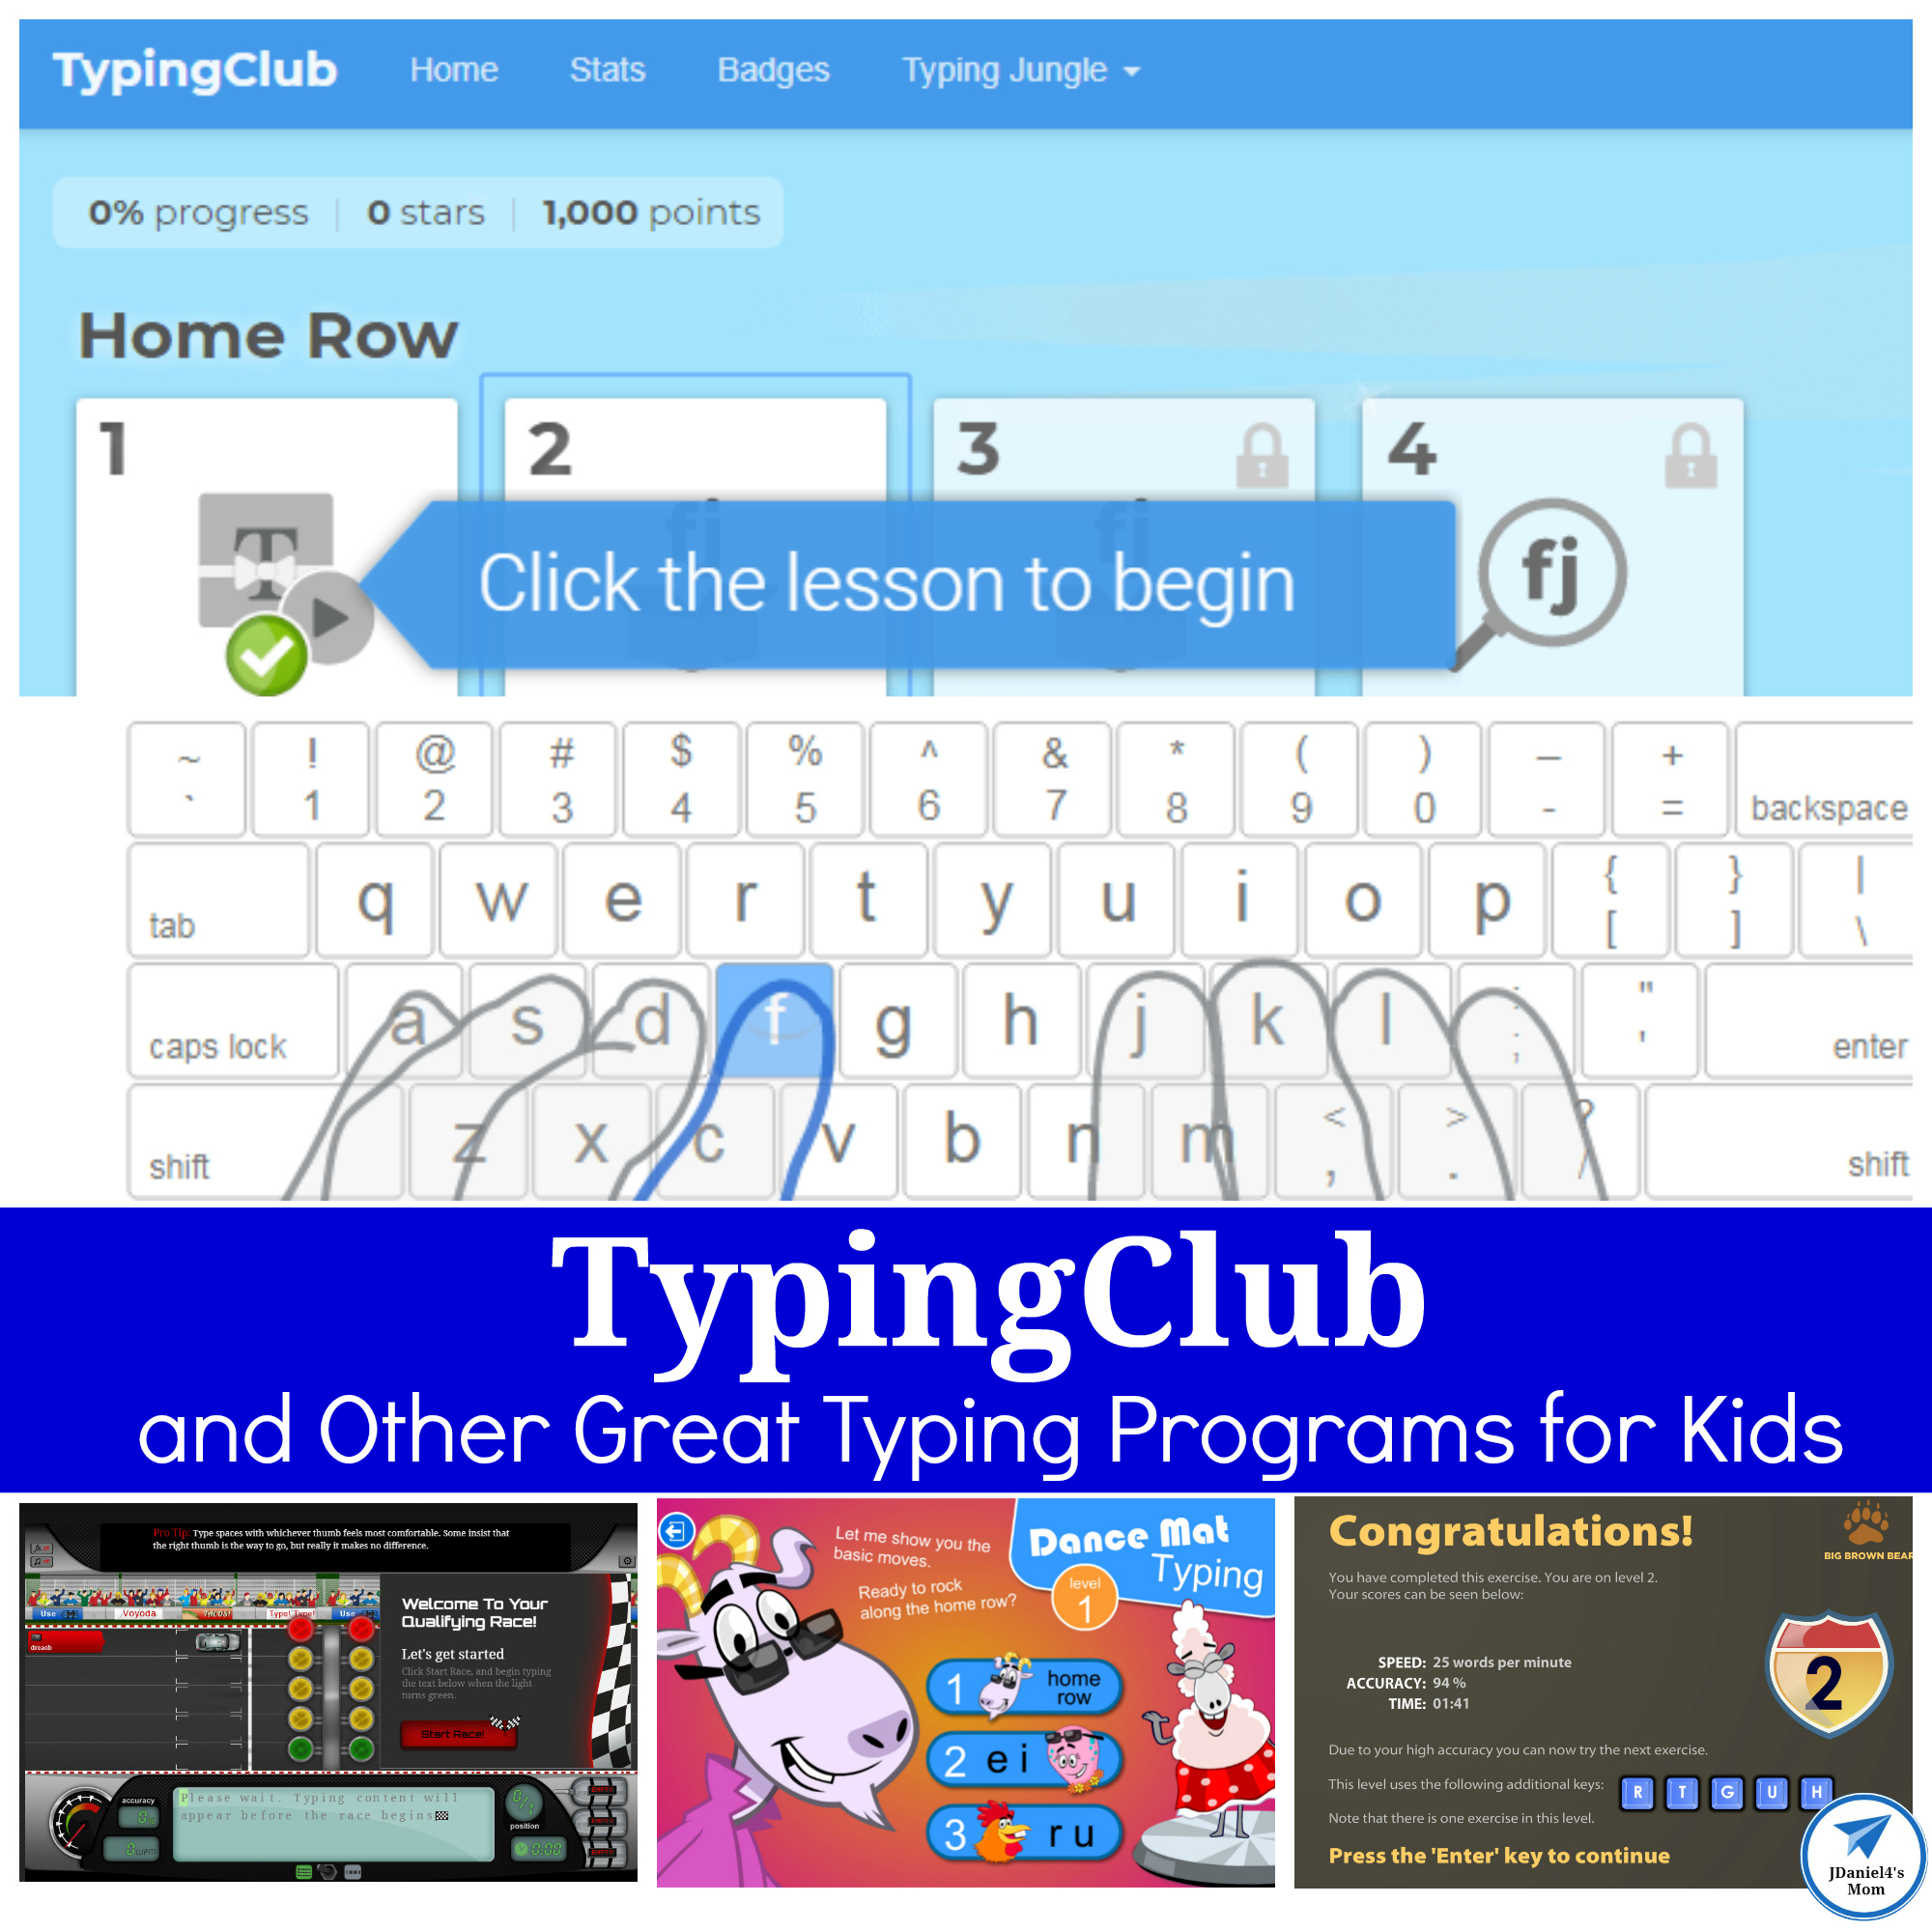 TypingClub and Other Great Typing Programs for Kids